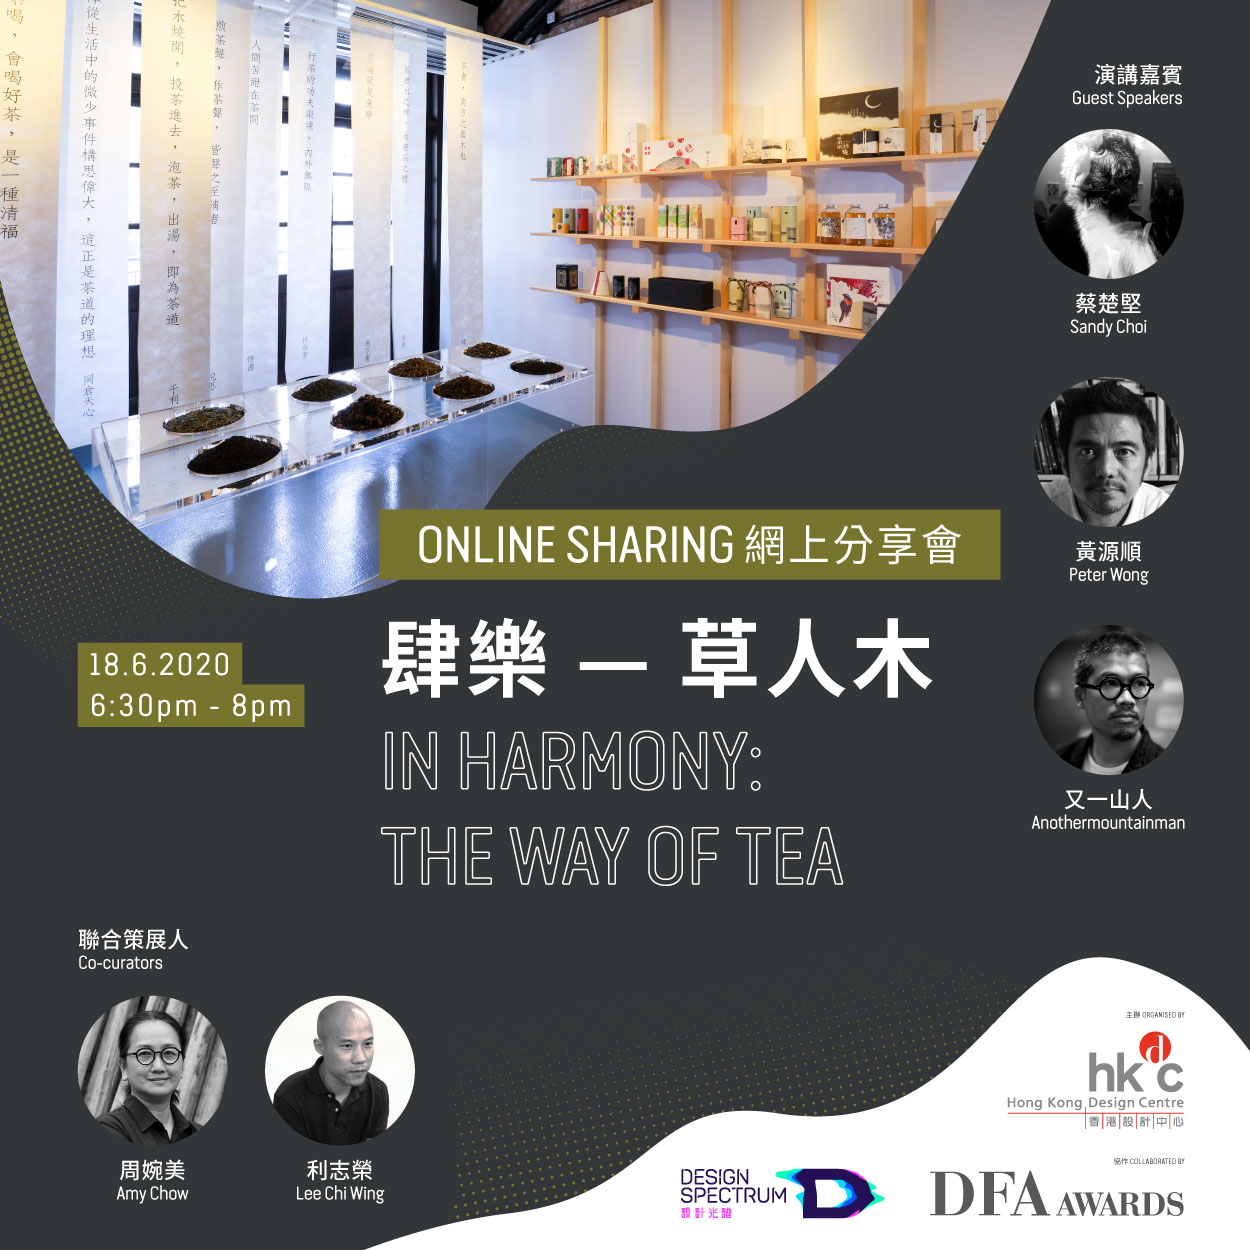 Design Spectrumin_harmony_the_way_of_tea_sharing